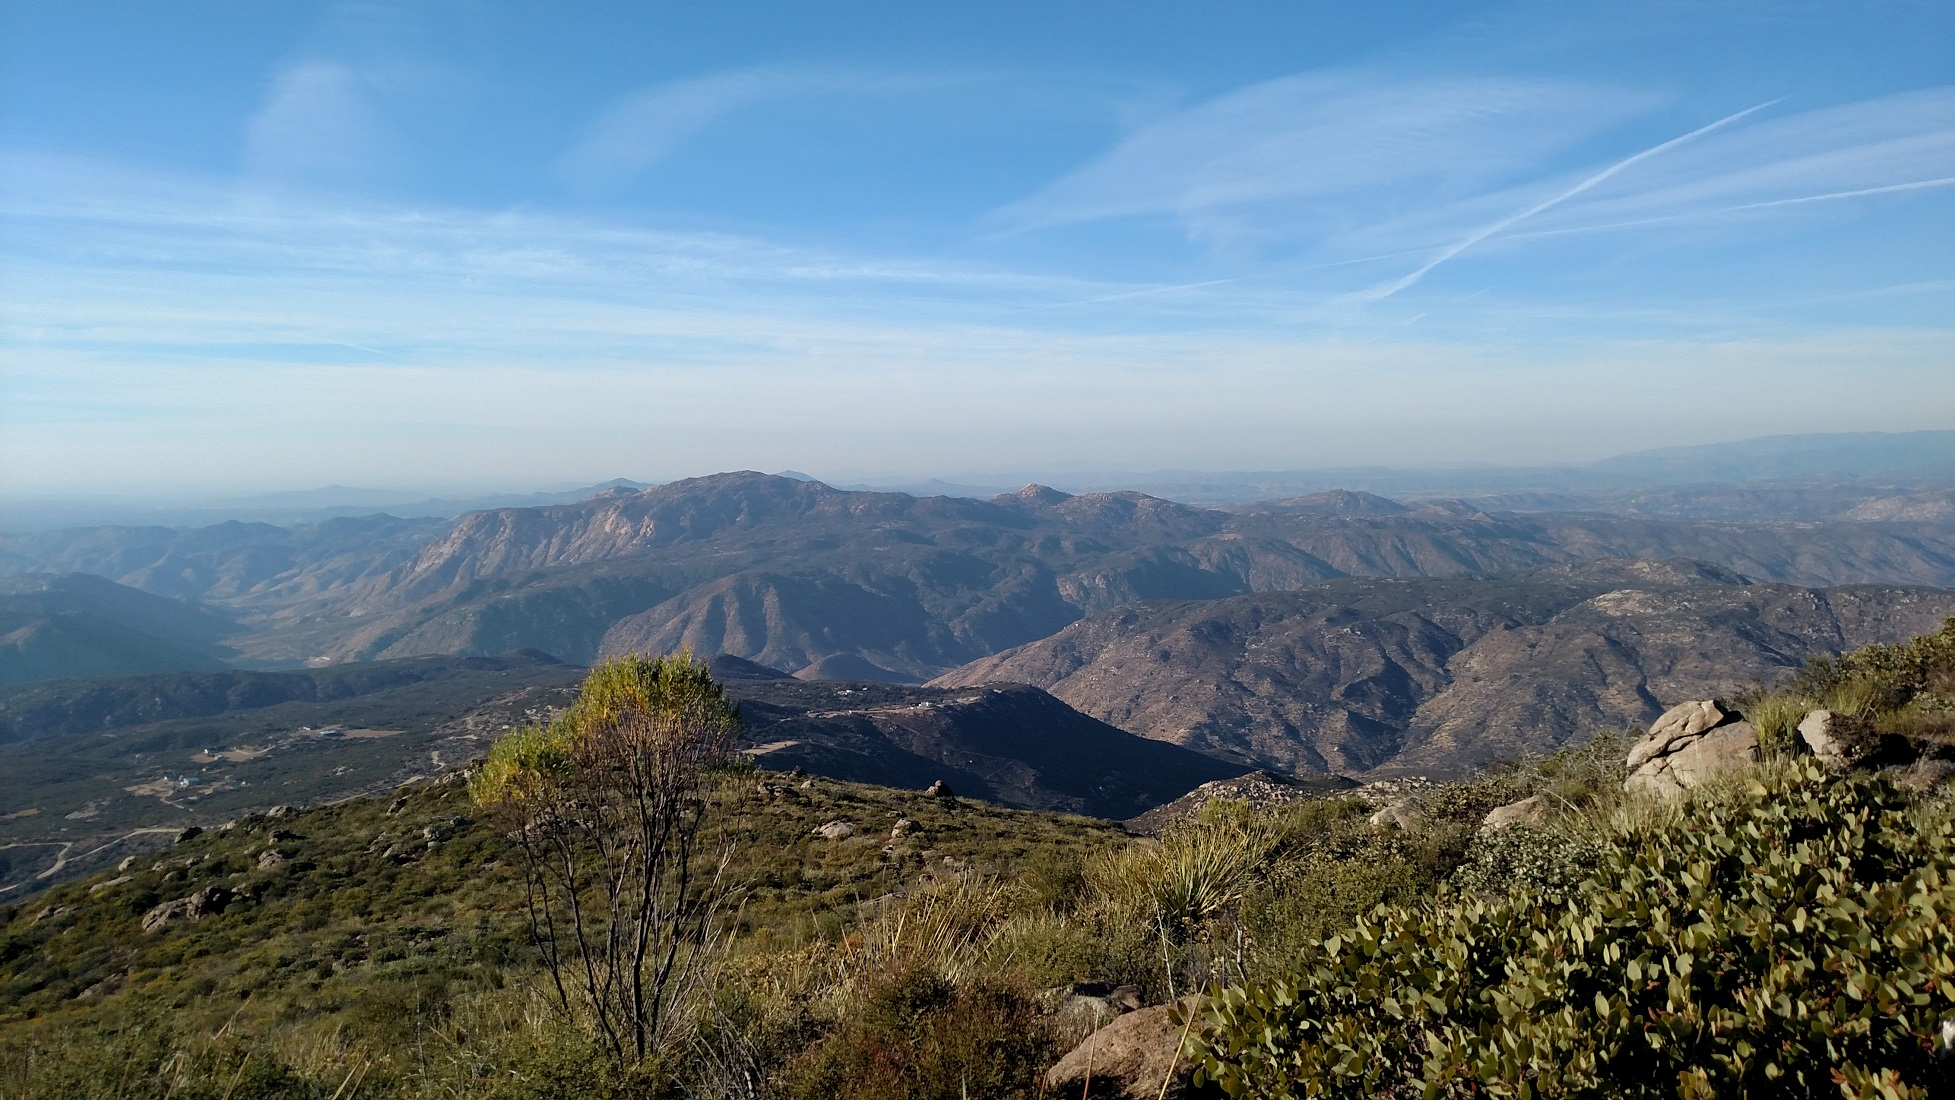 View from Viejas Mountain, Alpine, CA